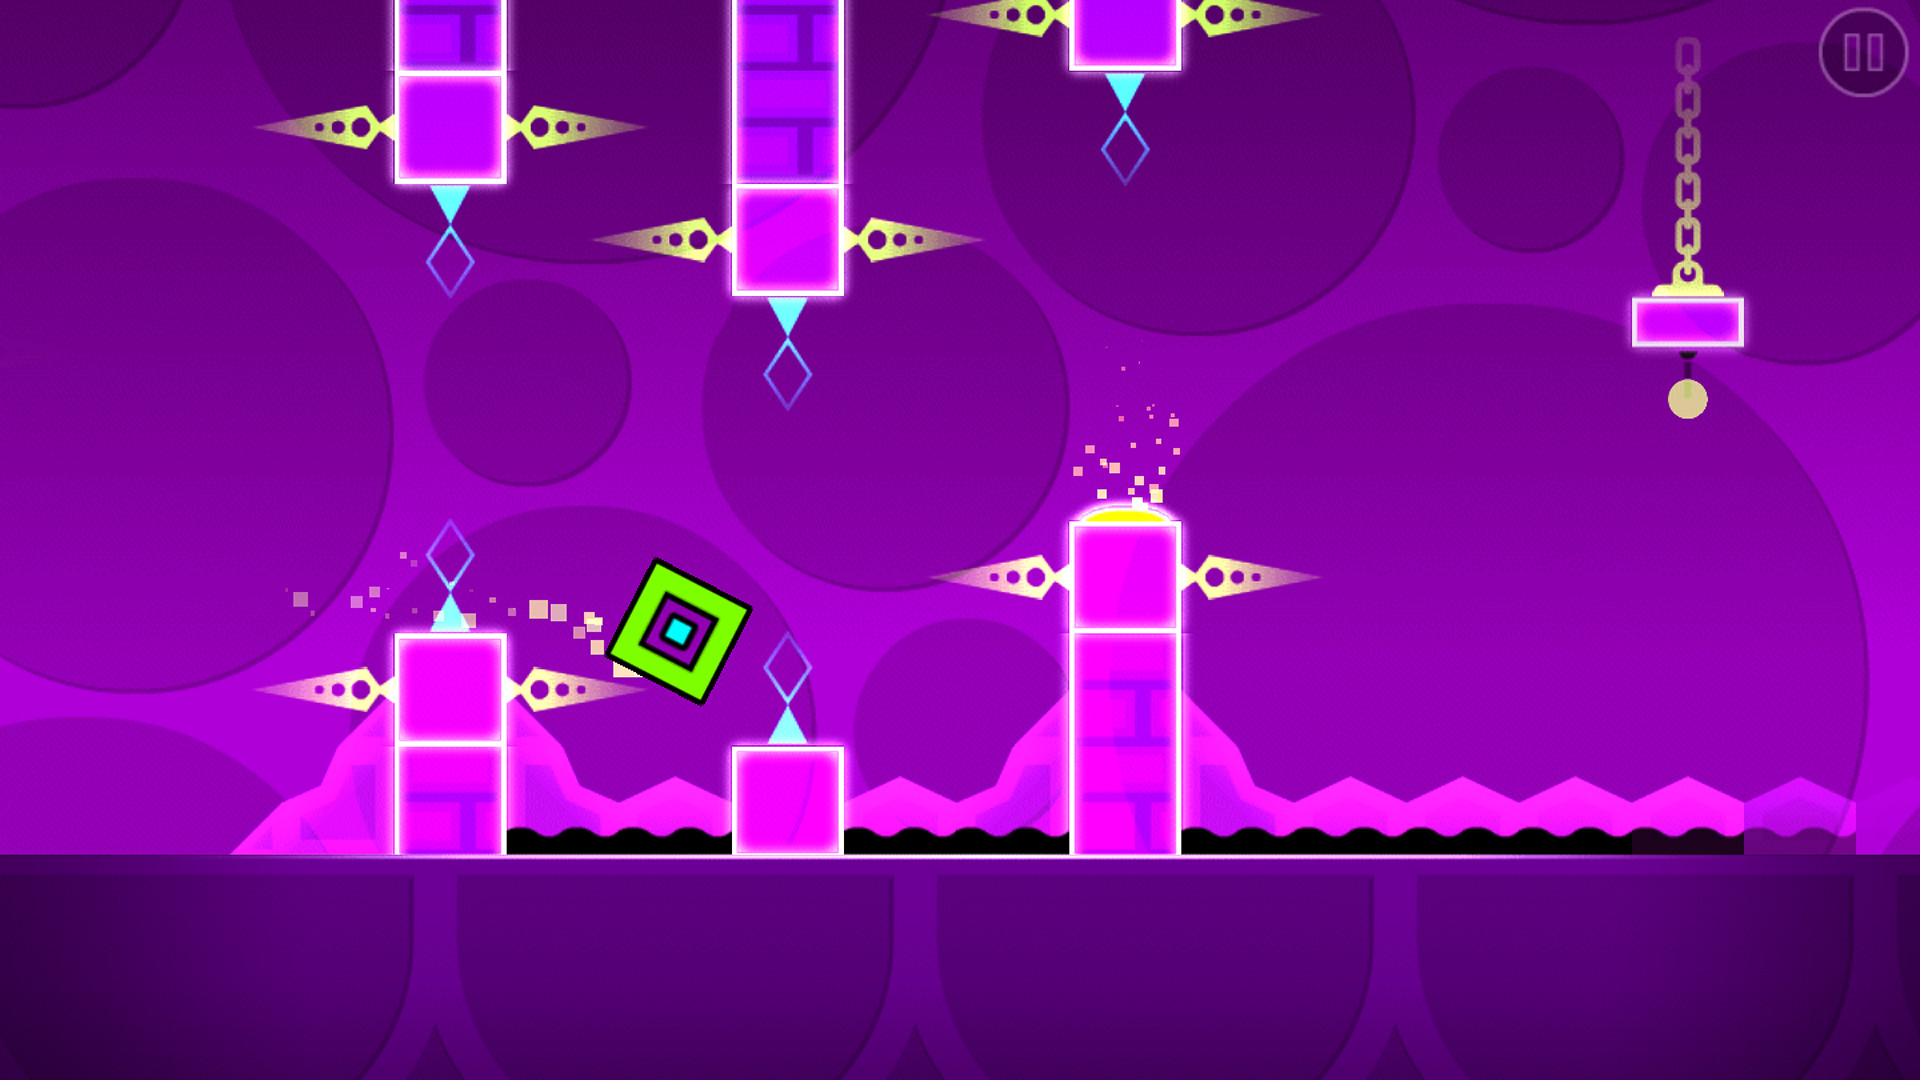 Find the best laptop for Geometry Dash